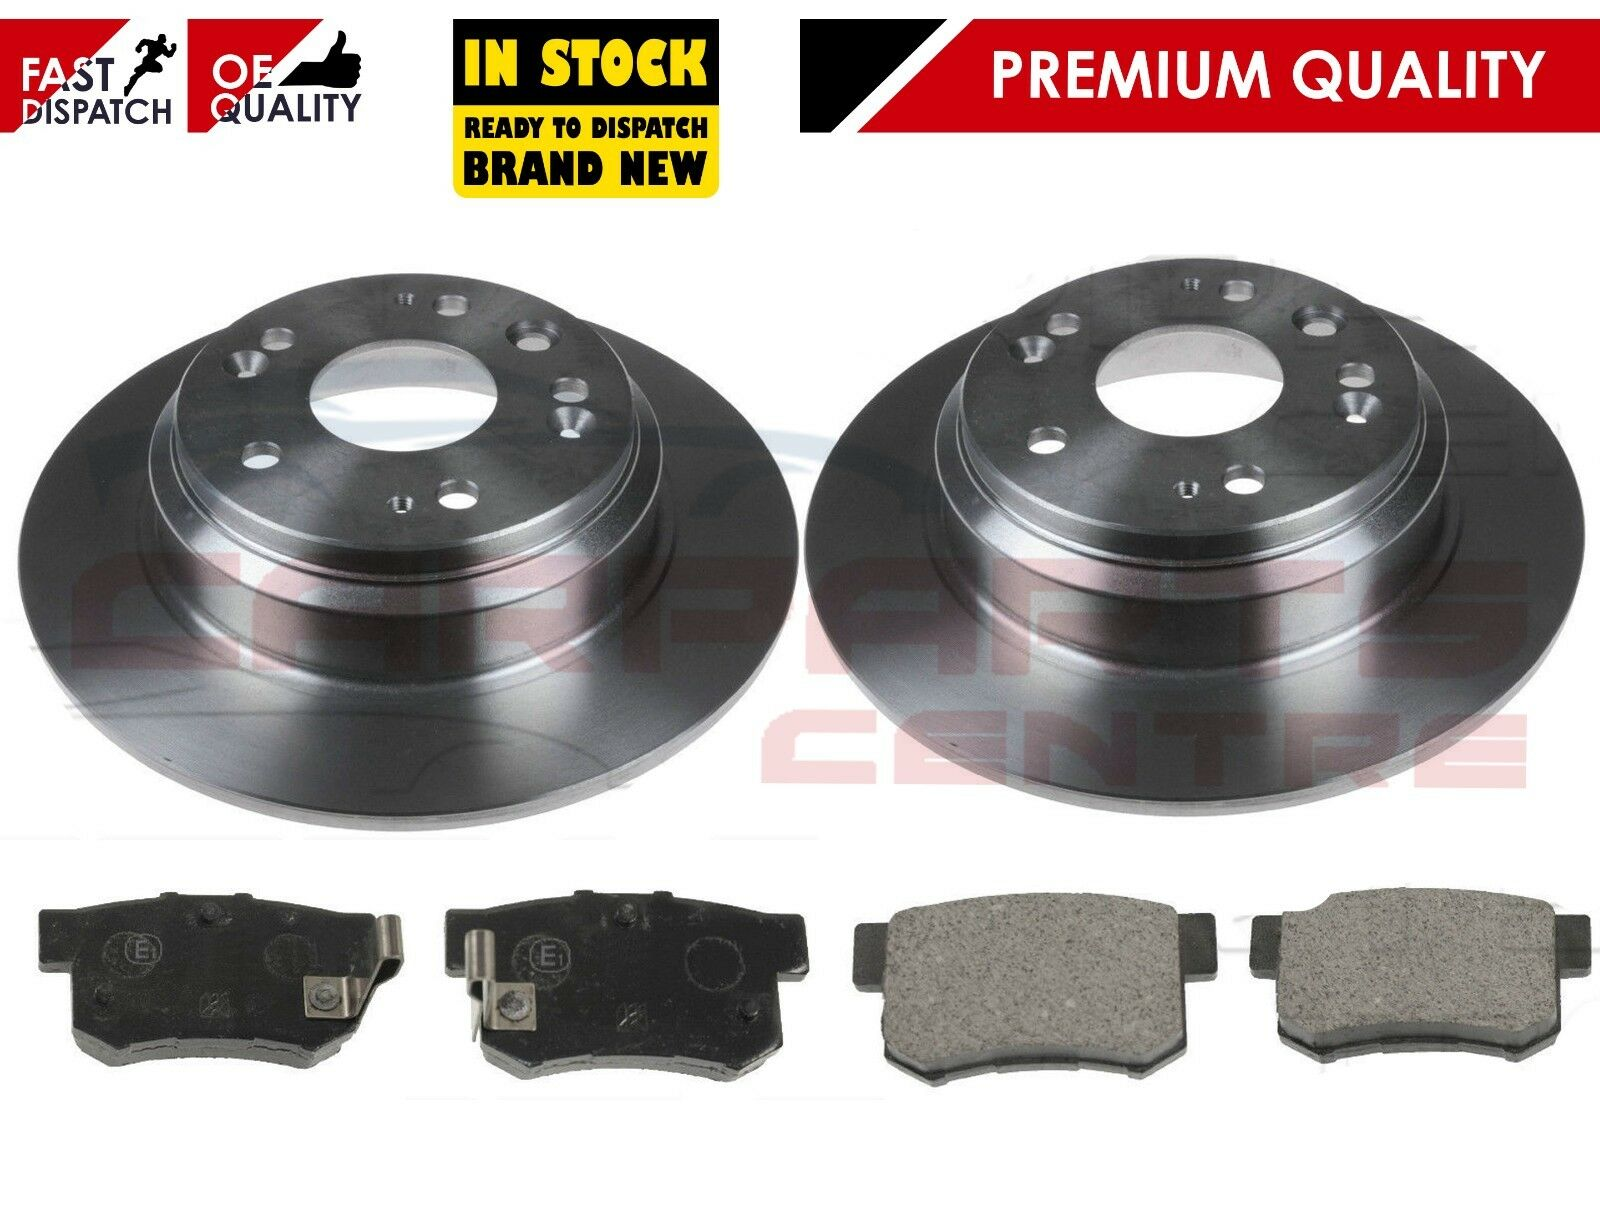 for HONDA ACCORD 2.2 CDTi TOURER ESTATE 2003-2008 FRONT 2 BRAKE DISCS AND PADS